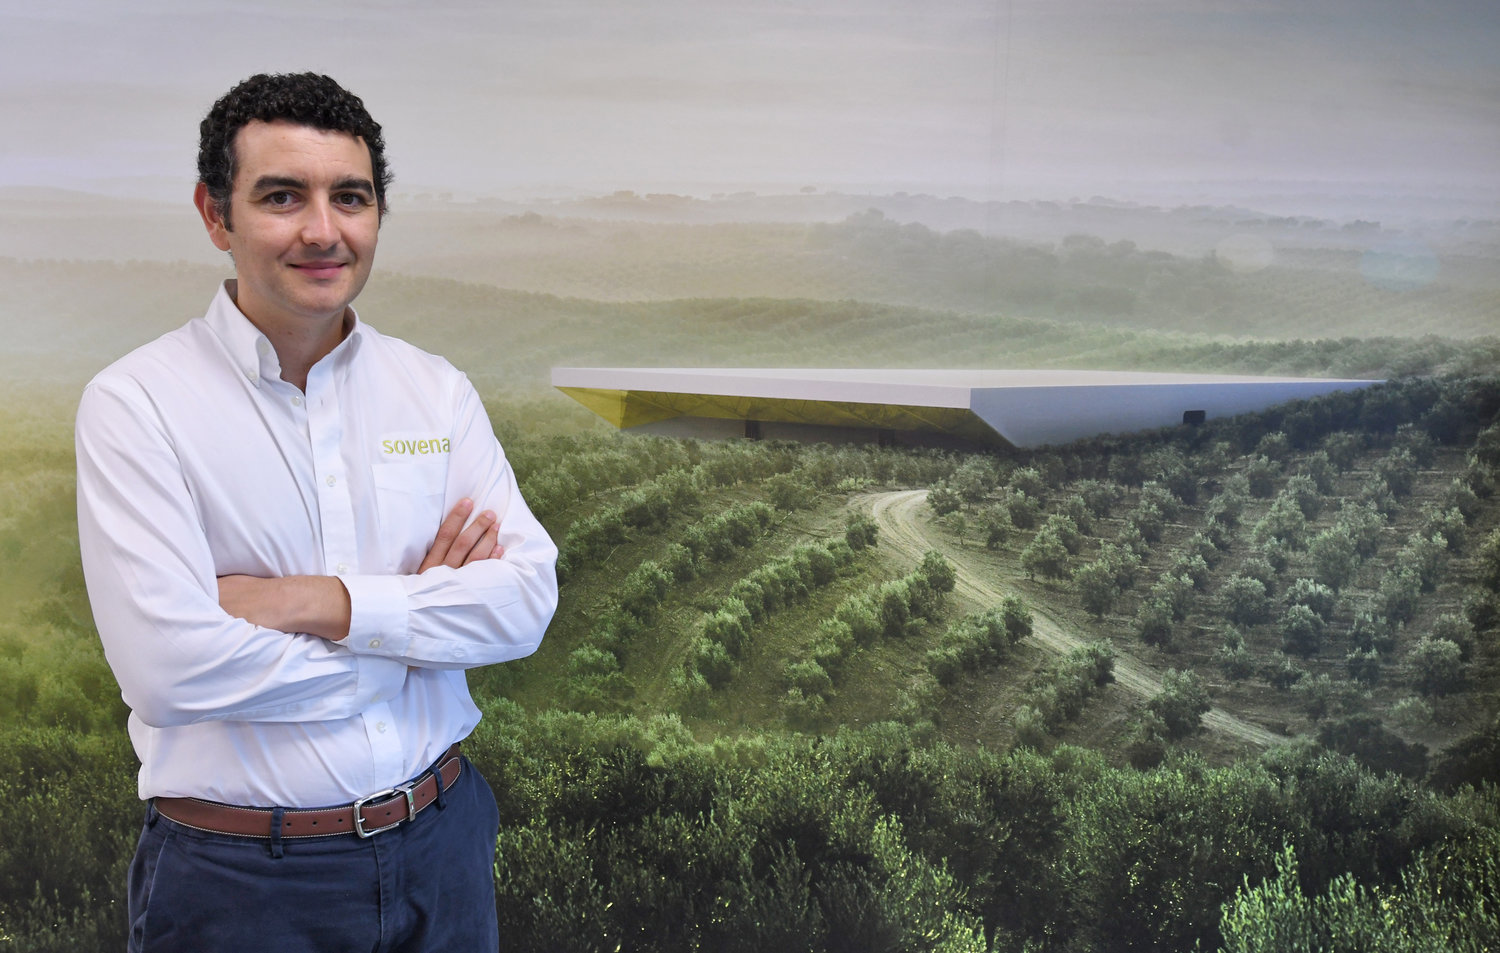 ROOTS OF SUCCESS — Sovena USA Inc. Managing Director Jorge Pena stands in front of an image at the company's Griffiss business park facility that shows an olive oil farm and state-of-the-art olive oil mill in Portugal that is owned by the parent Sovena Group. The local company sells olive oil and various related products.